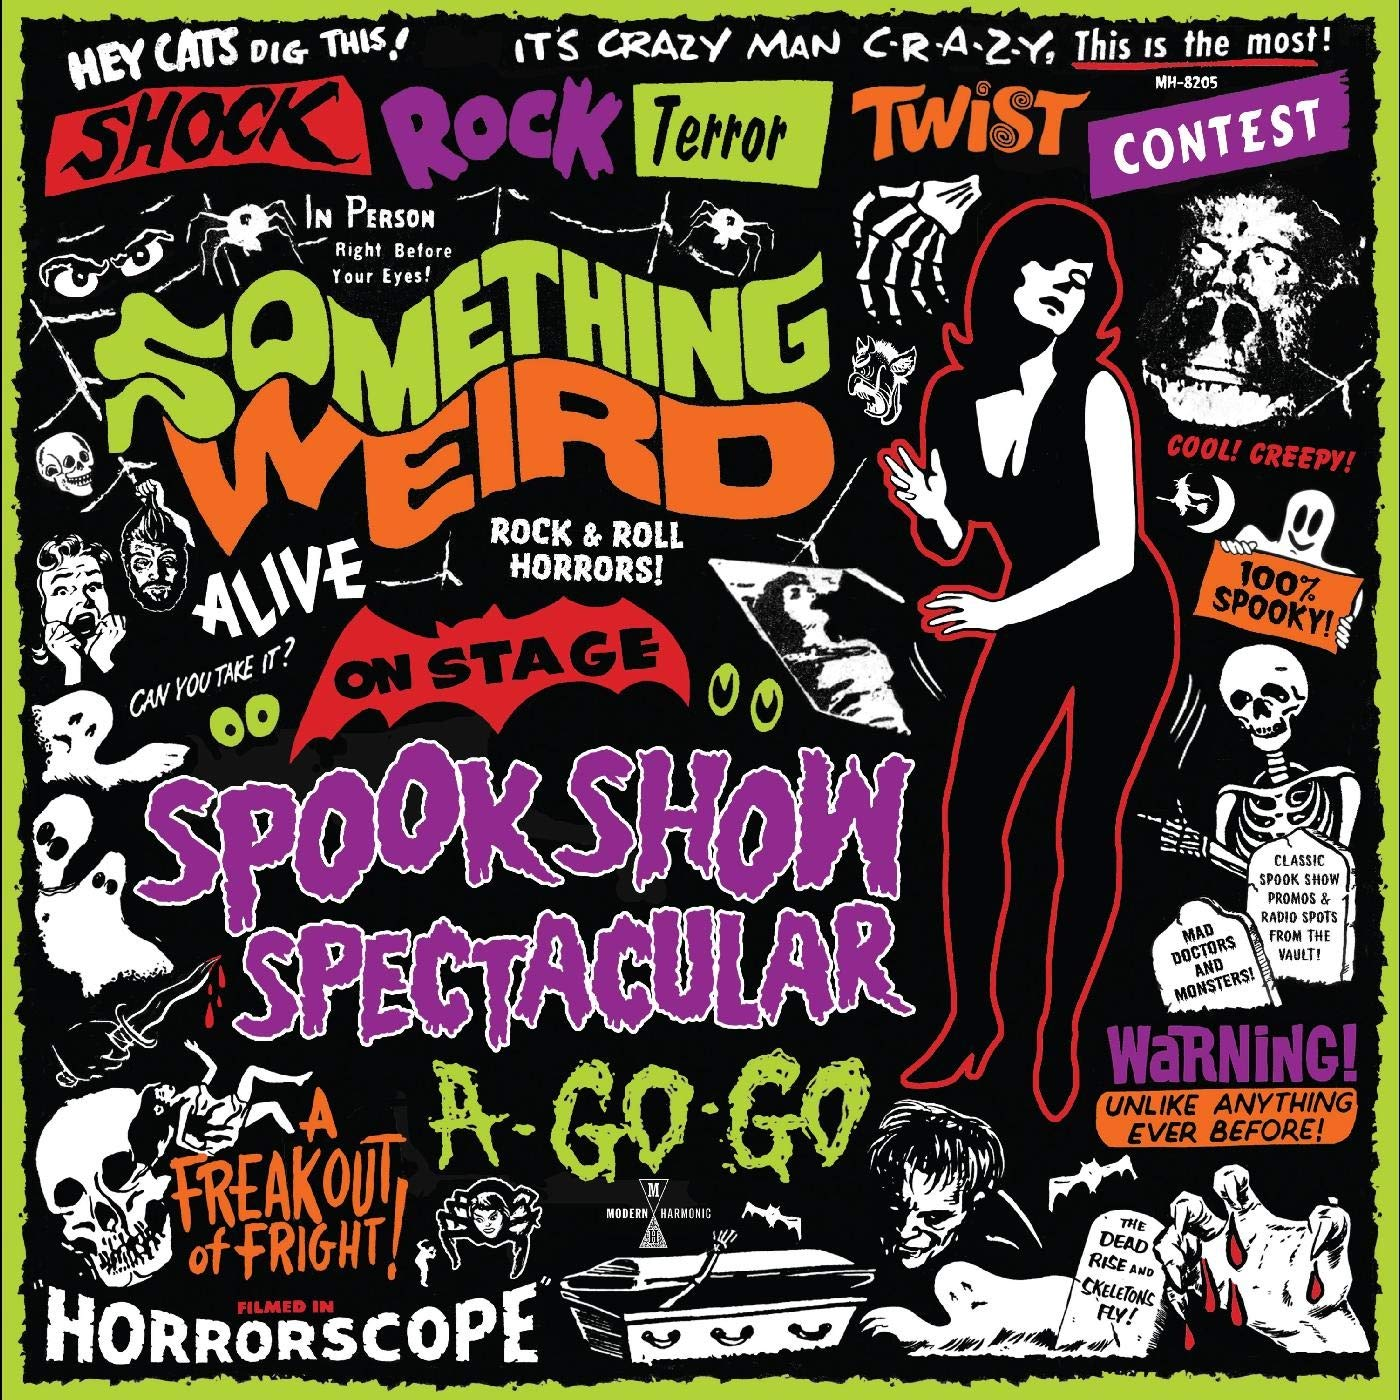 SPOOK SHOW VINTAGE STYLE HAUNTED ATTRACTION THE HORROR SHOW ART POSTER PRINT